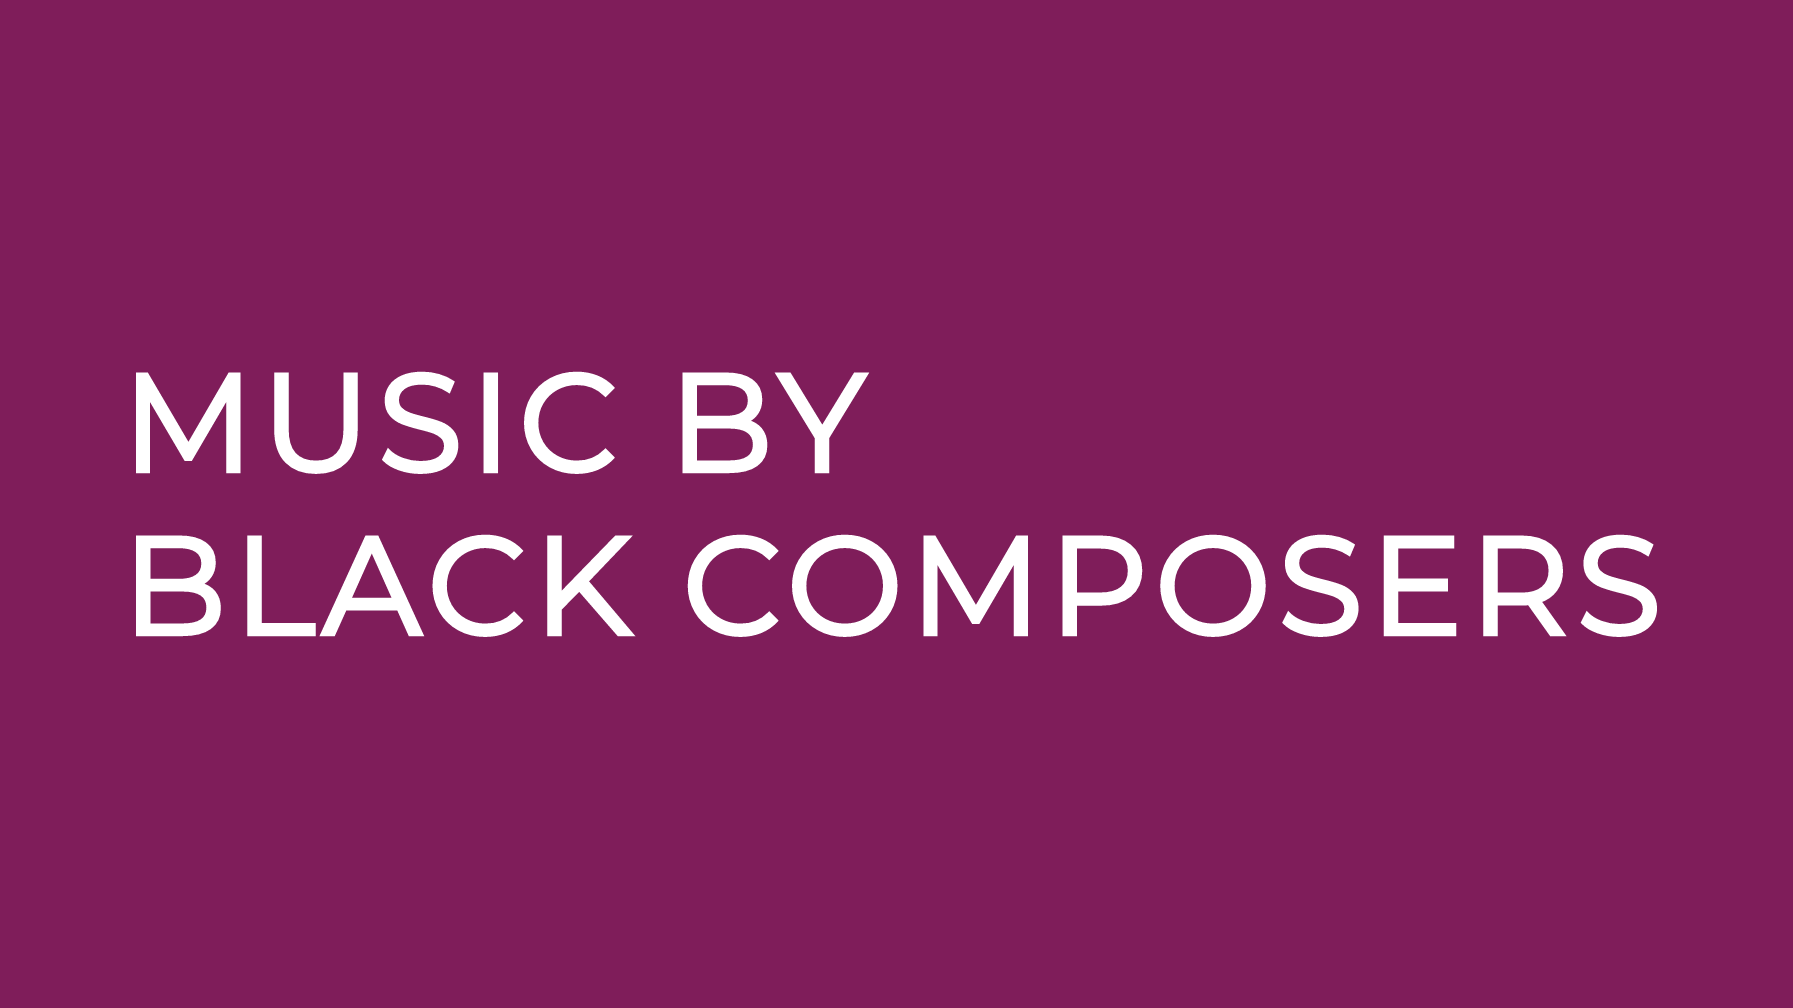 Founded by violinist Rachel Barton Pine, this organization seeks to bring awareness to the classical literature of Black composers and to inspire Black students to engage in the classical music landscape. The Living Composer Director resource is an especially valuable tool for those looking to program diverse voices.